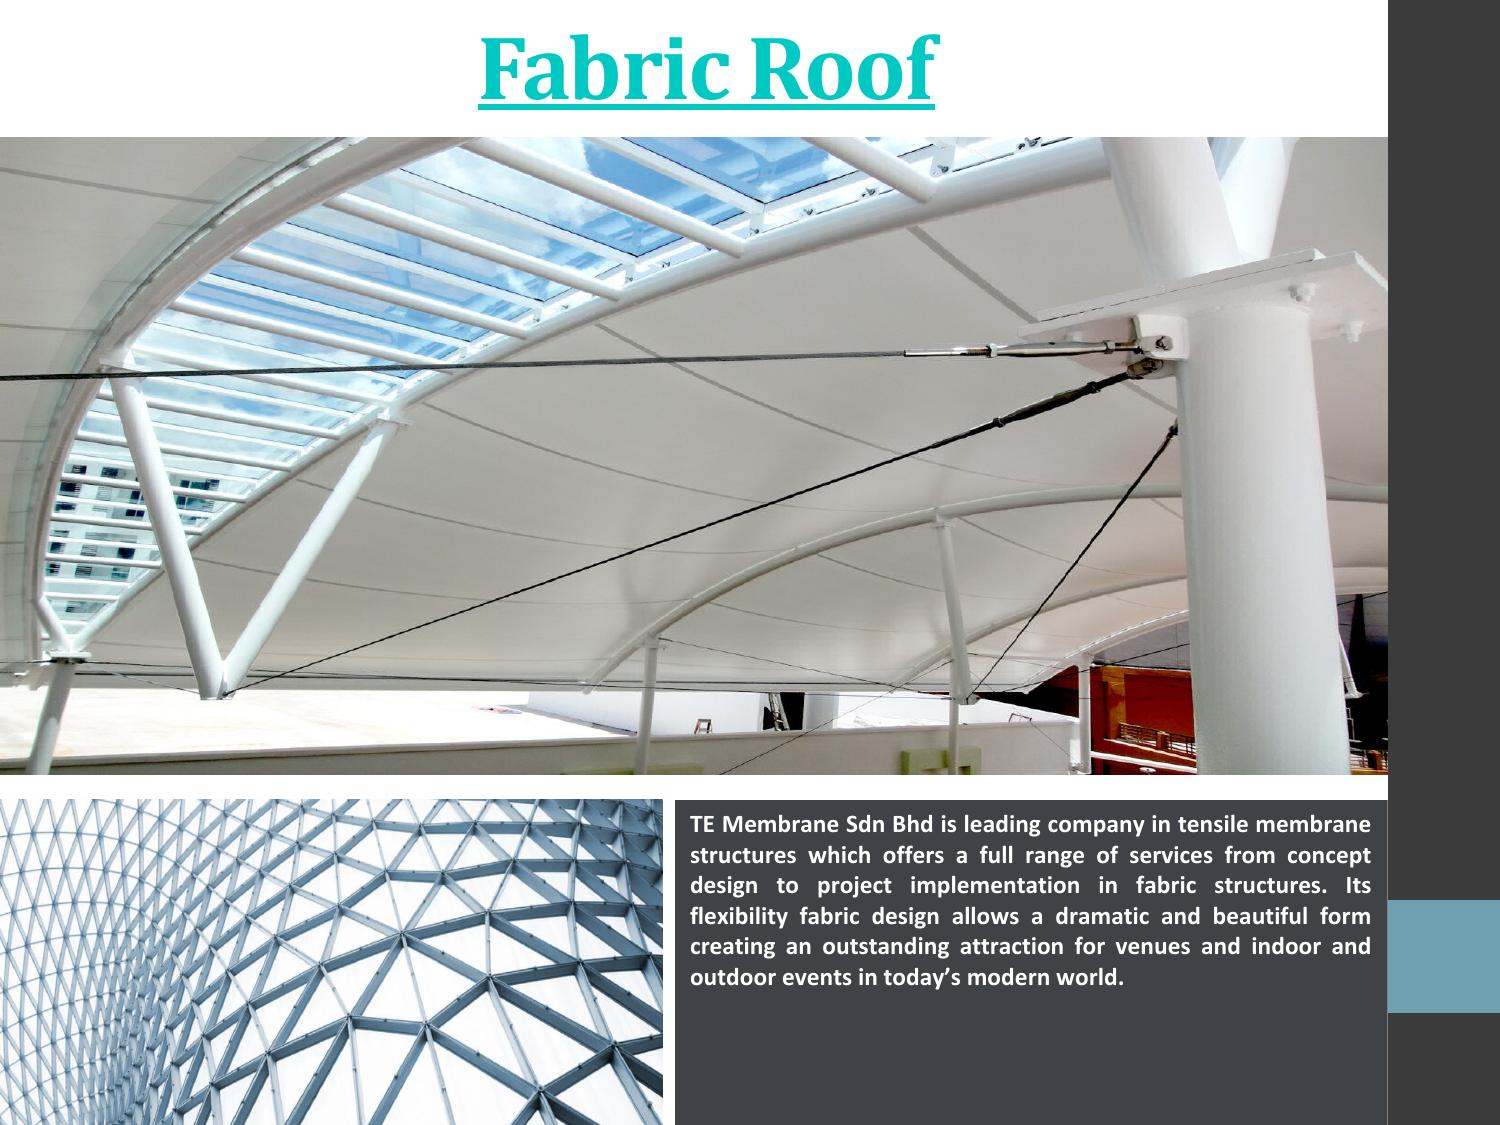 Fabric Roof By Fabric Roof Issuu